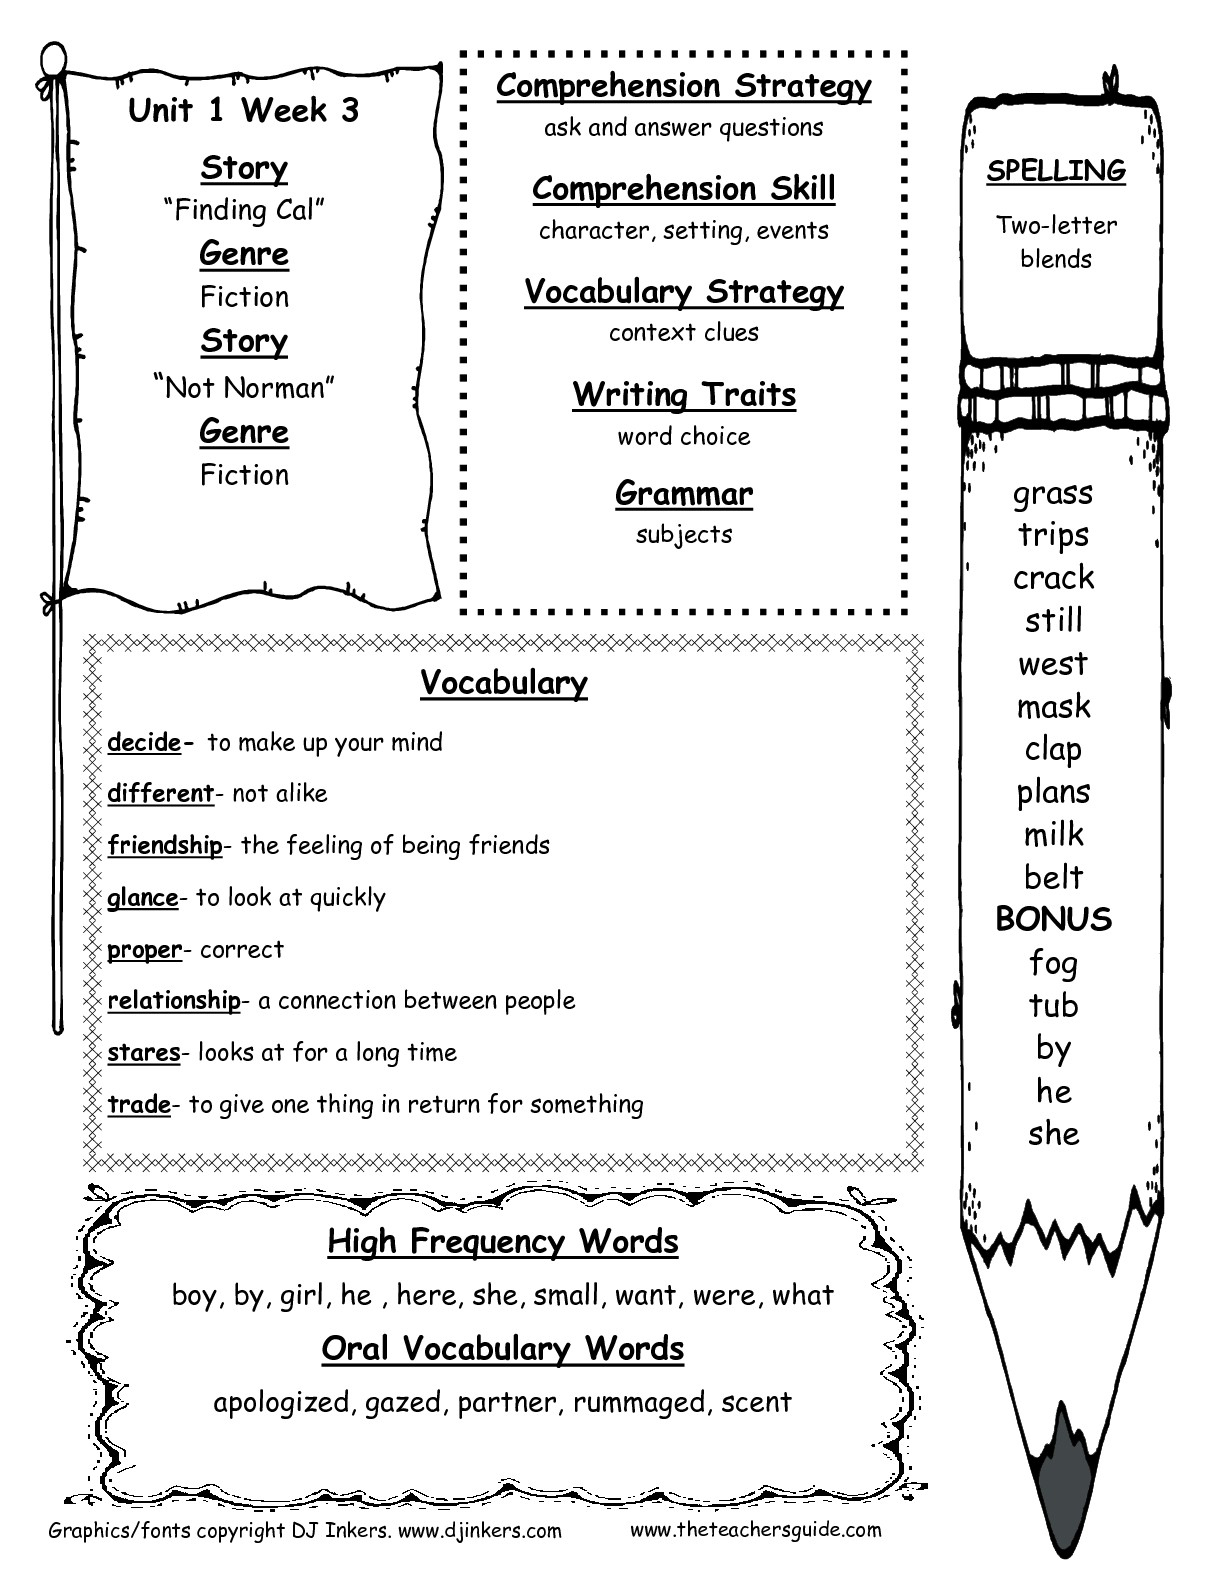 Wonders Second Grade Unit One Week Three Printouts - Free Printable Reading Games For 2Nd Graders